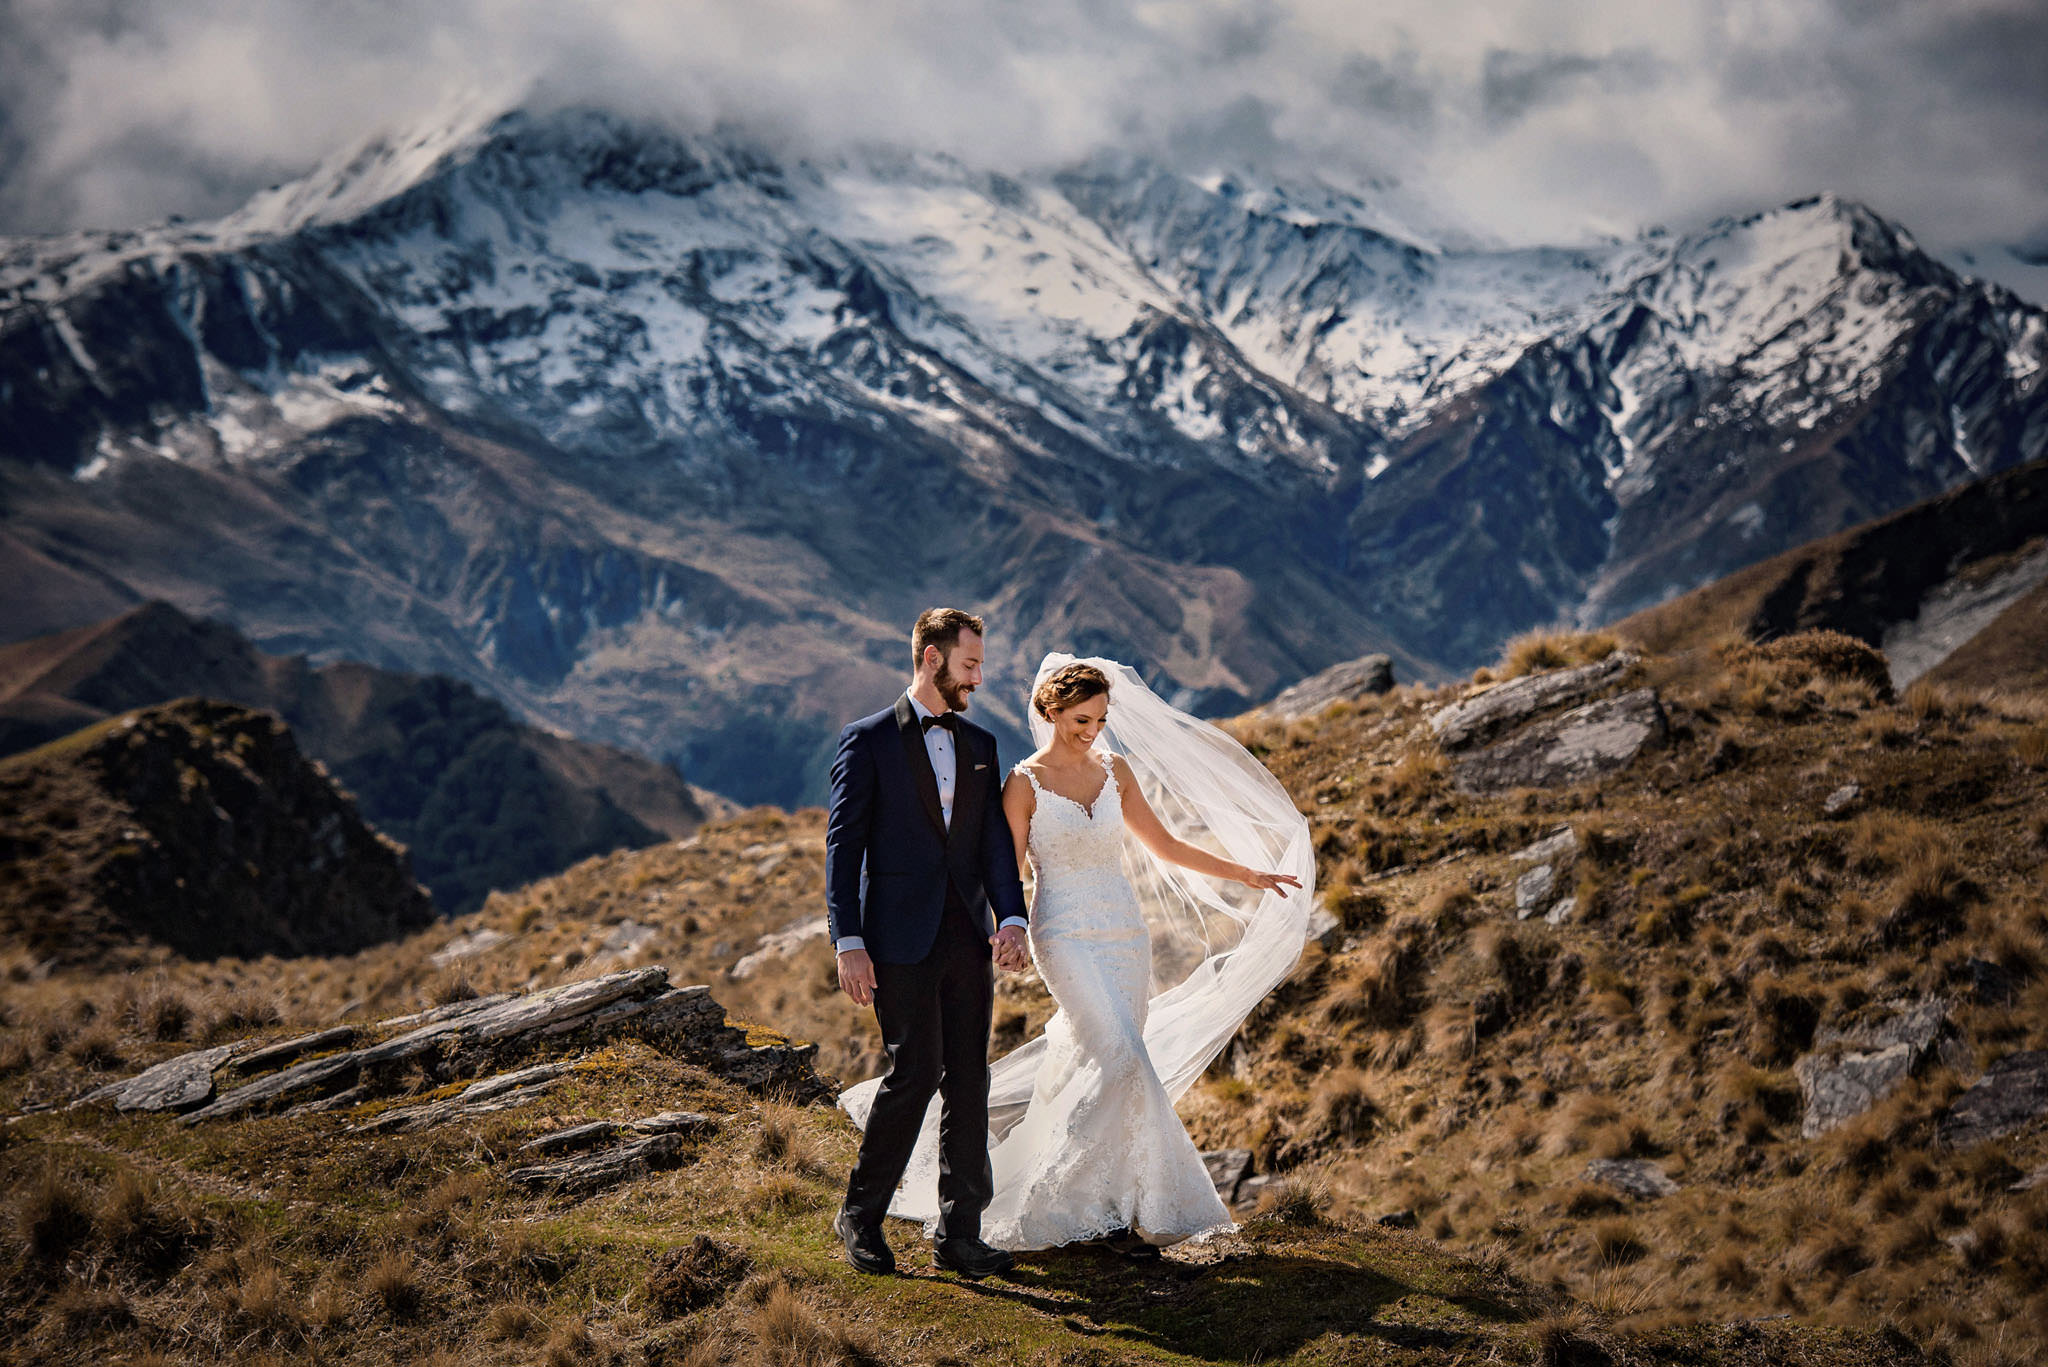 top wedding photos in new zealand on the queenstown mountains by photographer charleton churchill